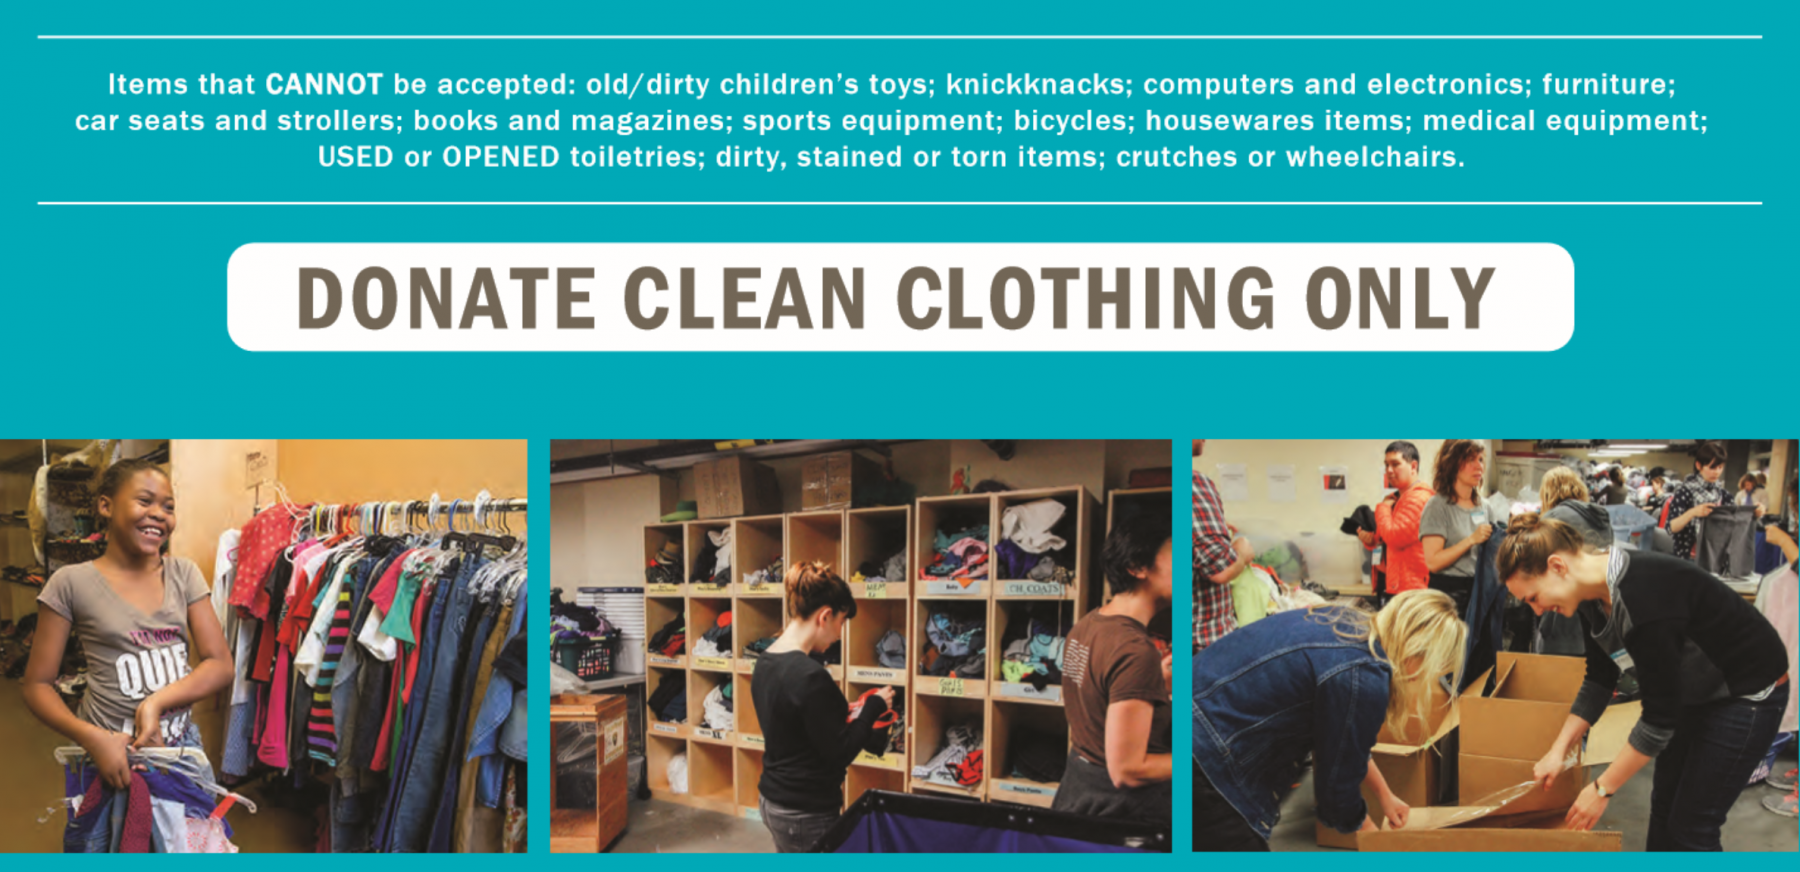 "Three pictures depicting individuals volunteering and benefiting from the donation program. Also includes text which states ""Items that CANNOT be accepted: old dirty children's toys, knickknacks, computers and electronics, furniture, car seats and strollers, books and magazines, sports equipment, bicycles, housewares items, medical equipment, USED or OPENED toiletries, stained items, crutches or wheelchairs."""